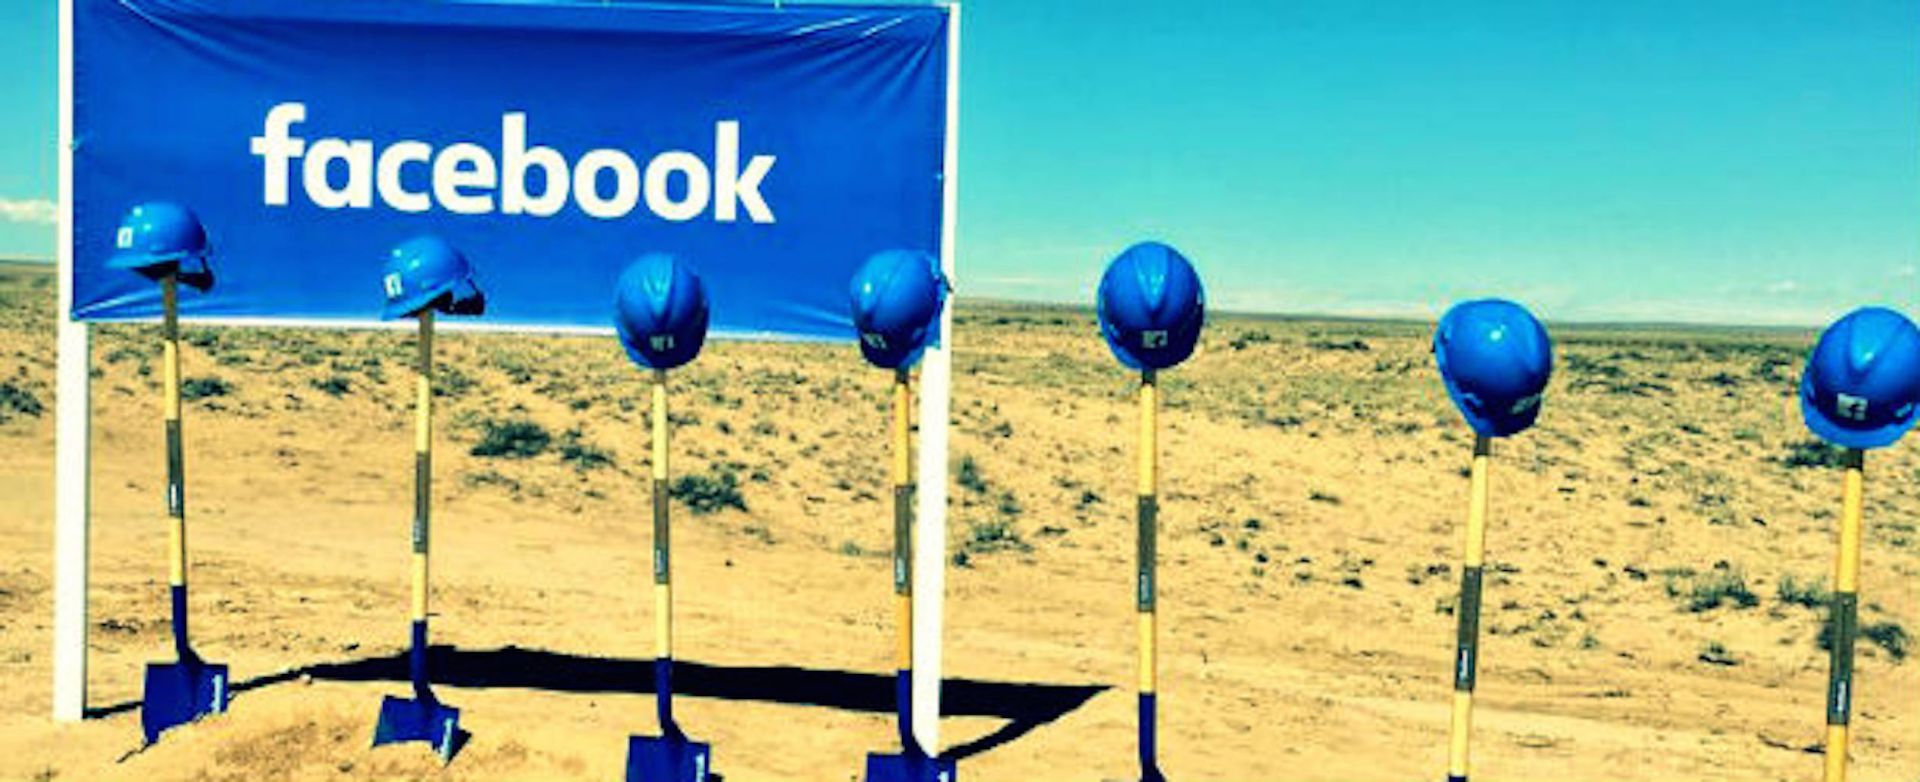 FINANCE Your very Own 20-Lot Package in the Heart of the Facebook Excitement! - Image 2 of 7